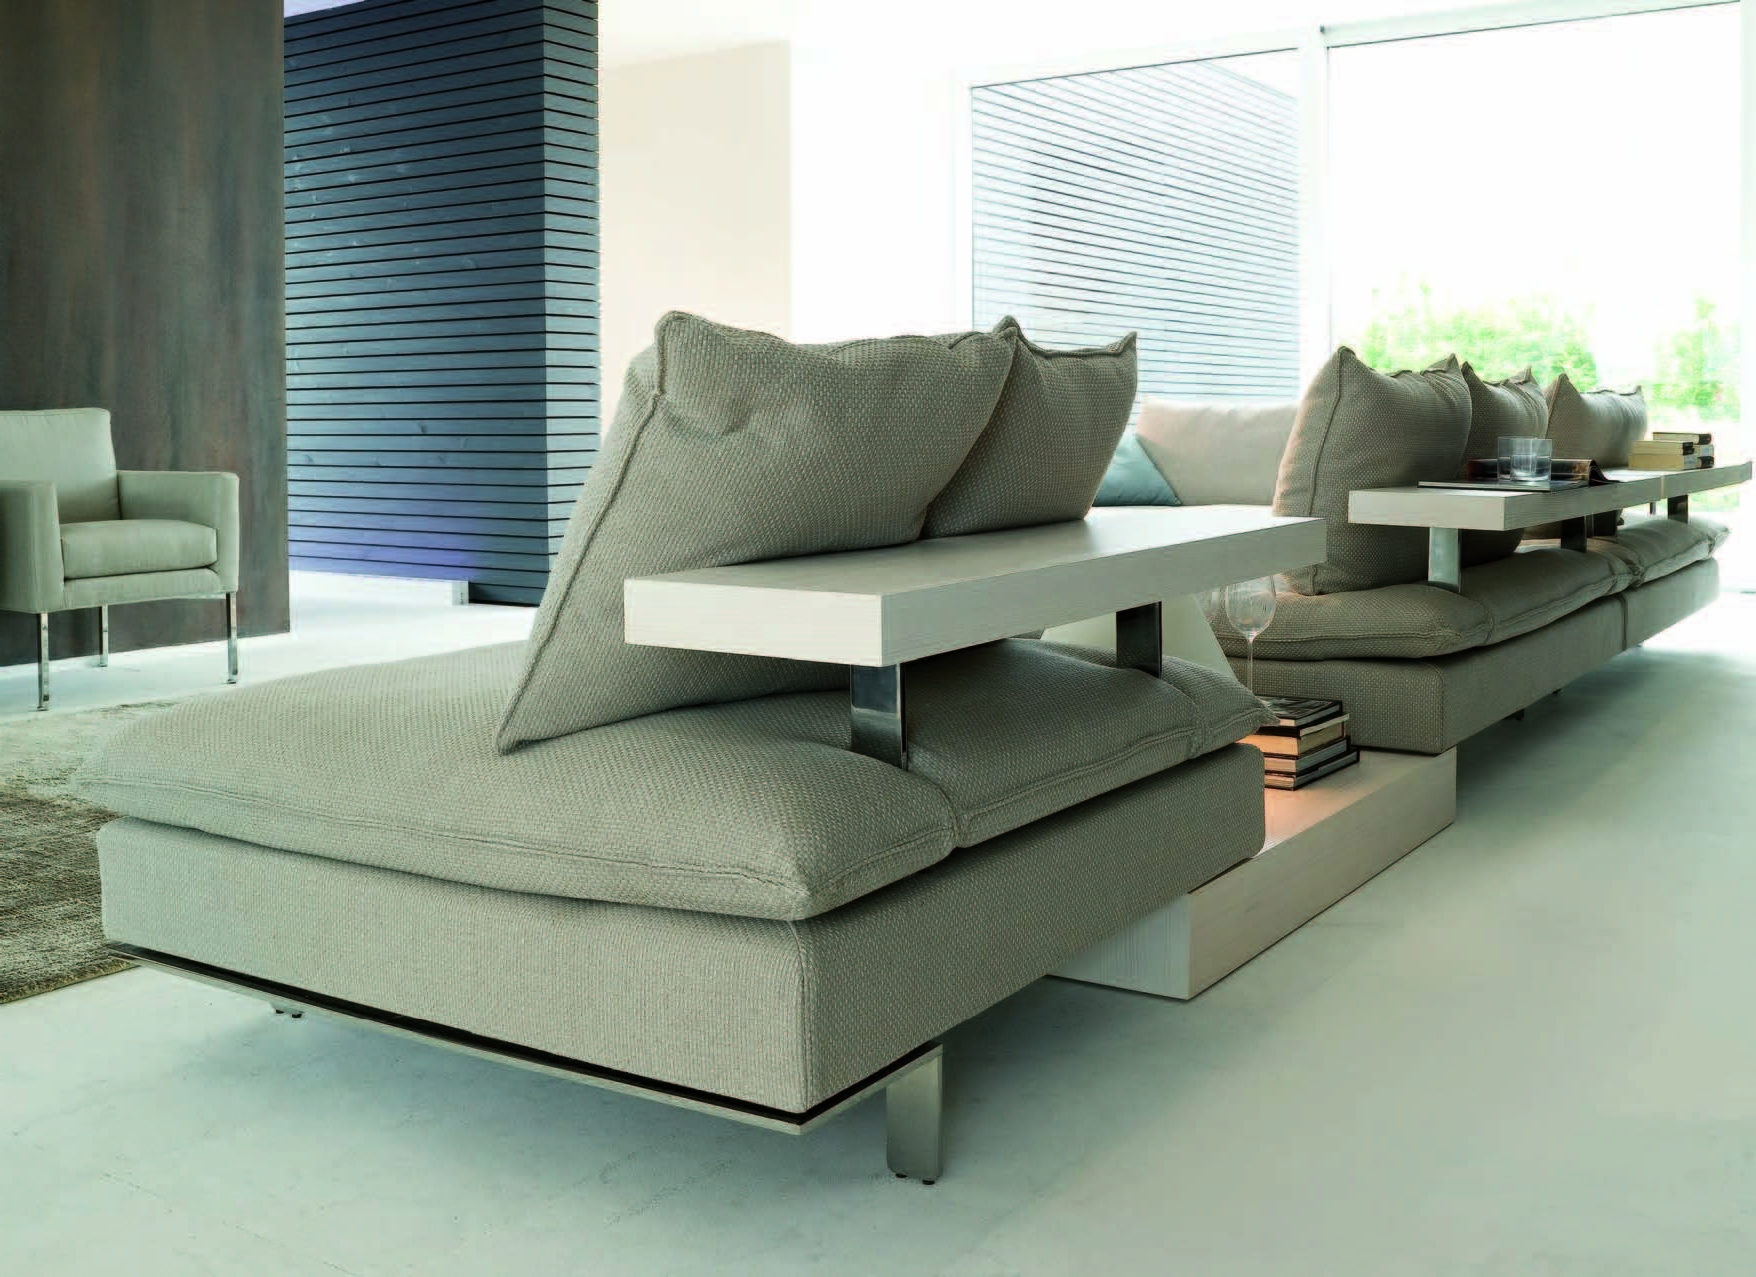 Bedroom Sofas And Chairs Within Well Known Italian Sofas At Momentoitalia – Modern Sofas,designer Sofas (View 1 of 15)